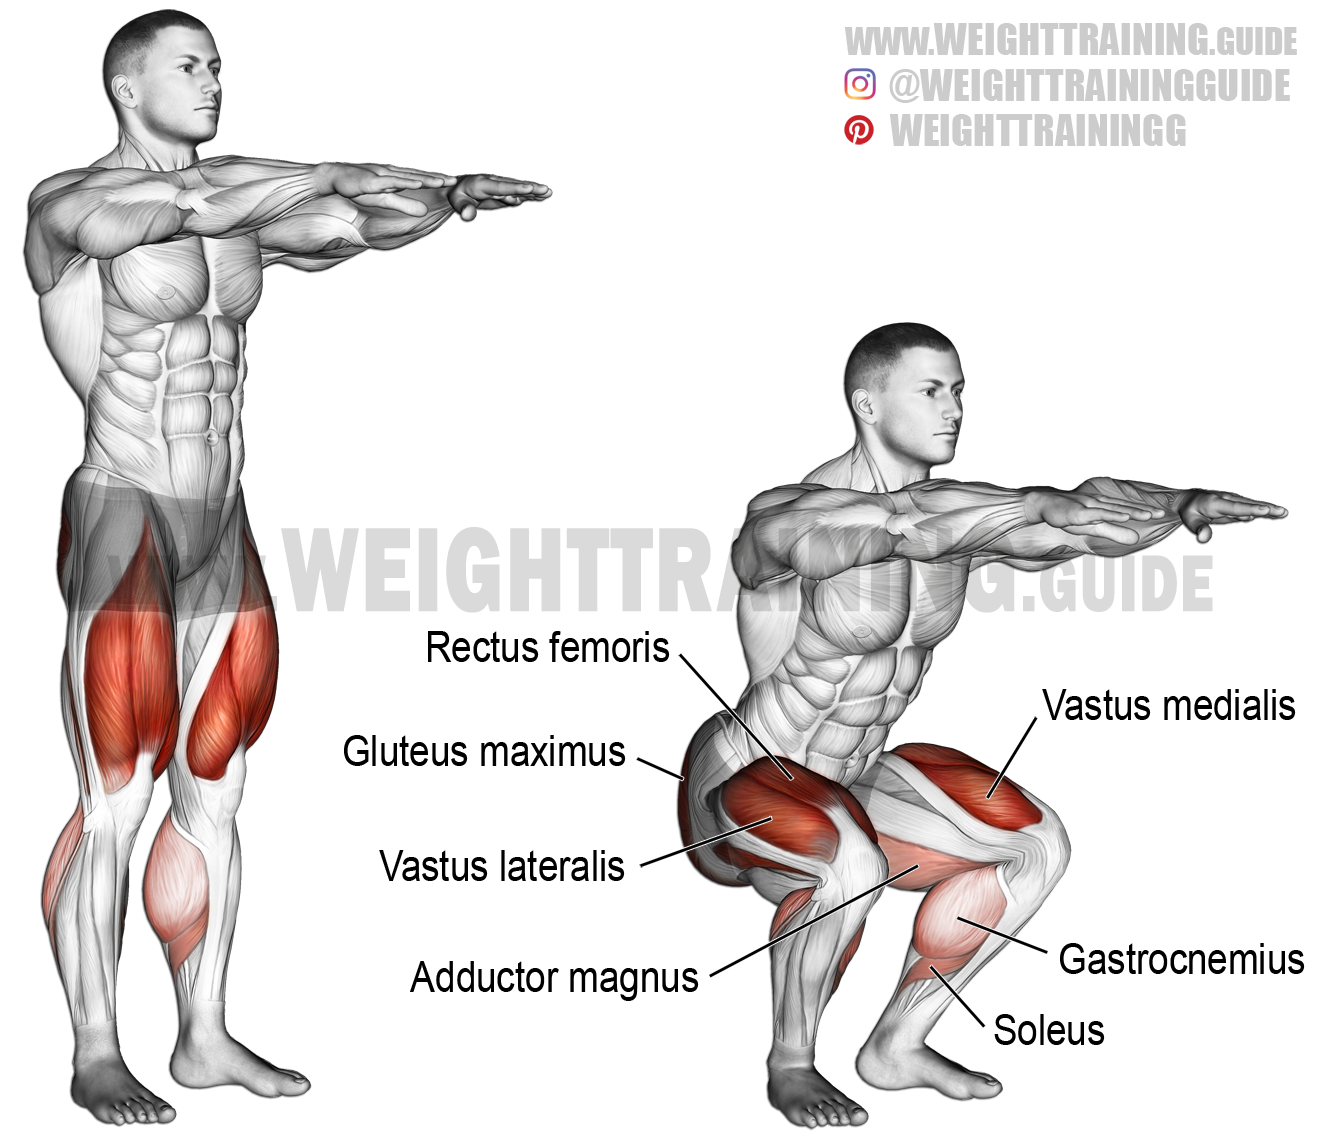 Bodyweight squat exercise instructions and video | Weight Training Guide | Squat  workout, Bodyweight workout, Squats